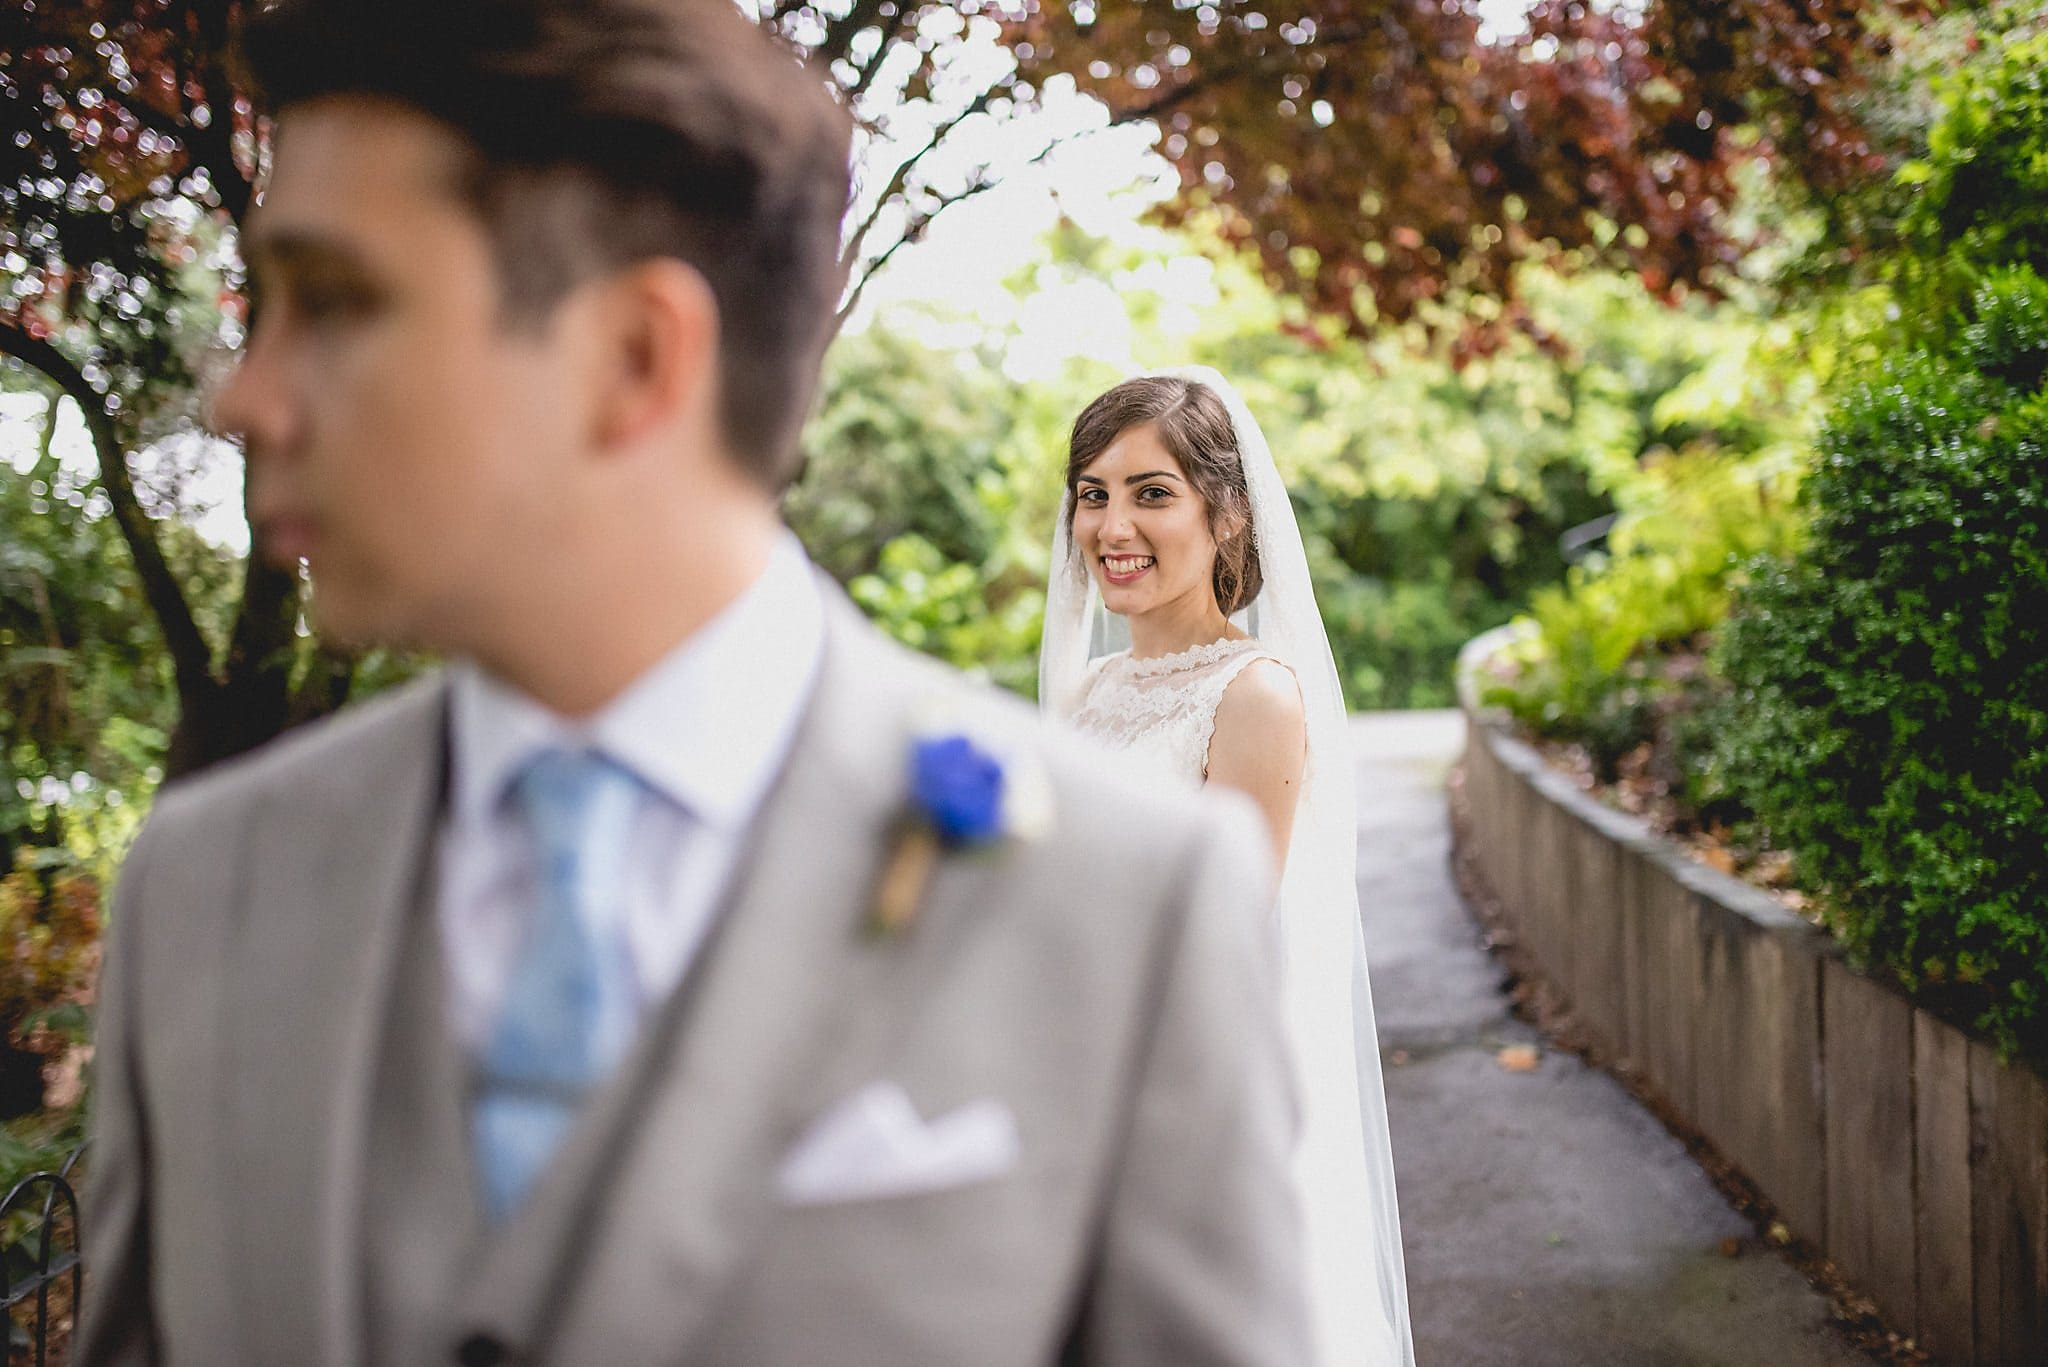 Bride in focus, groom in foreground out of focus during couple's shoot in Regent's Park